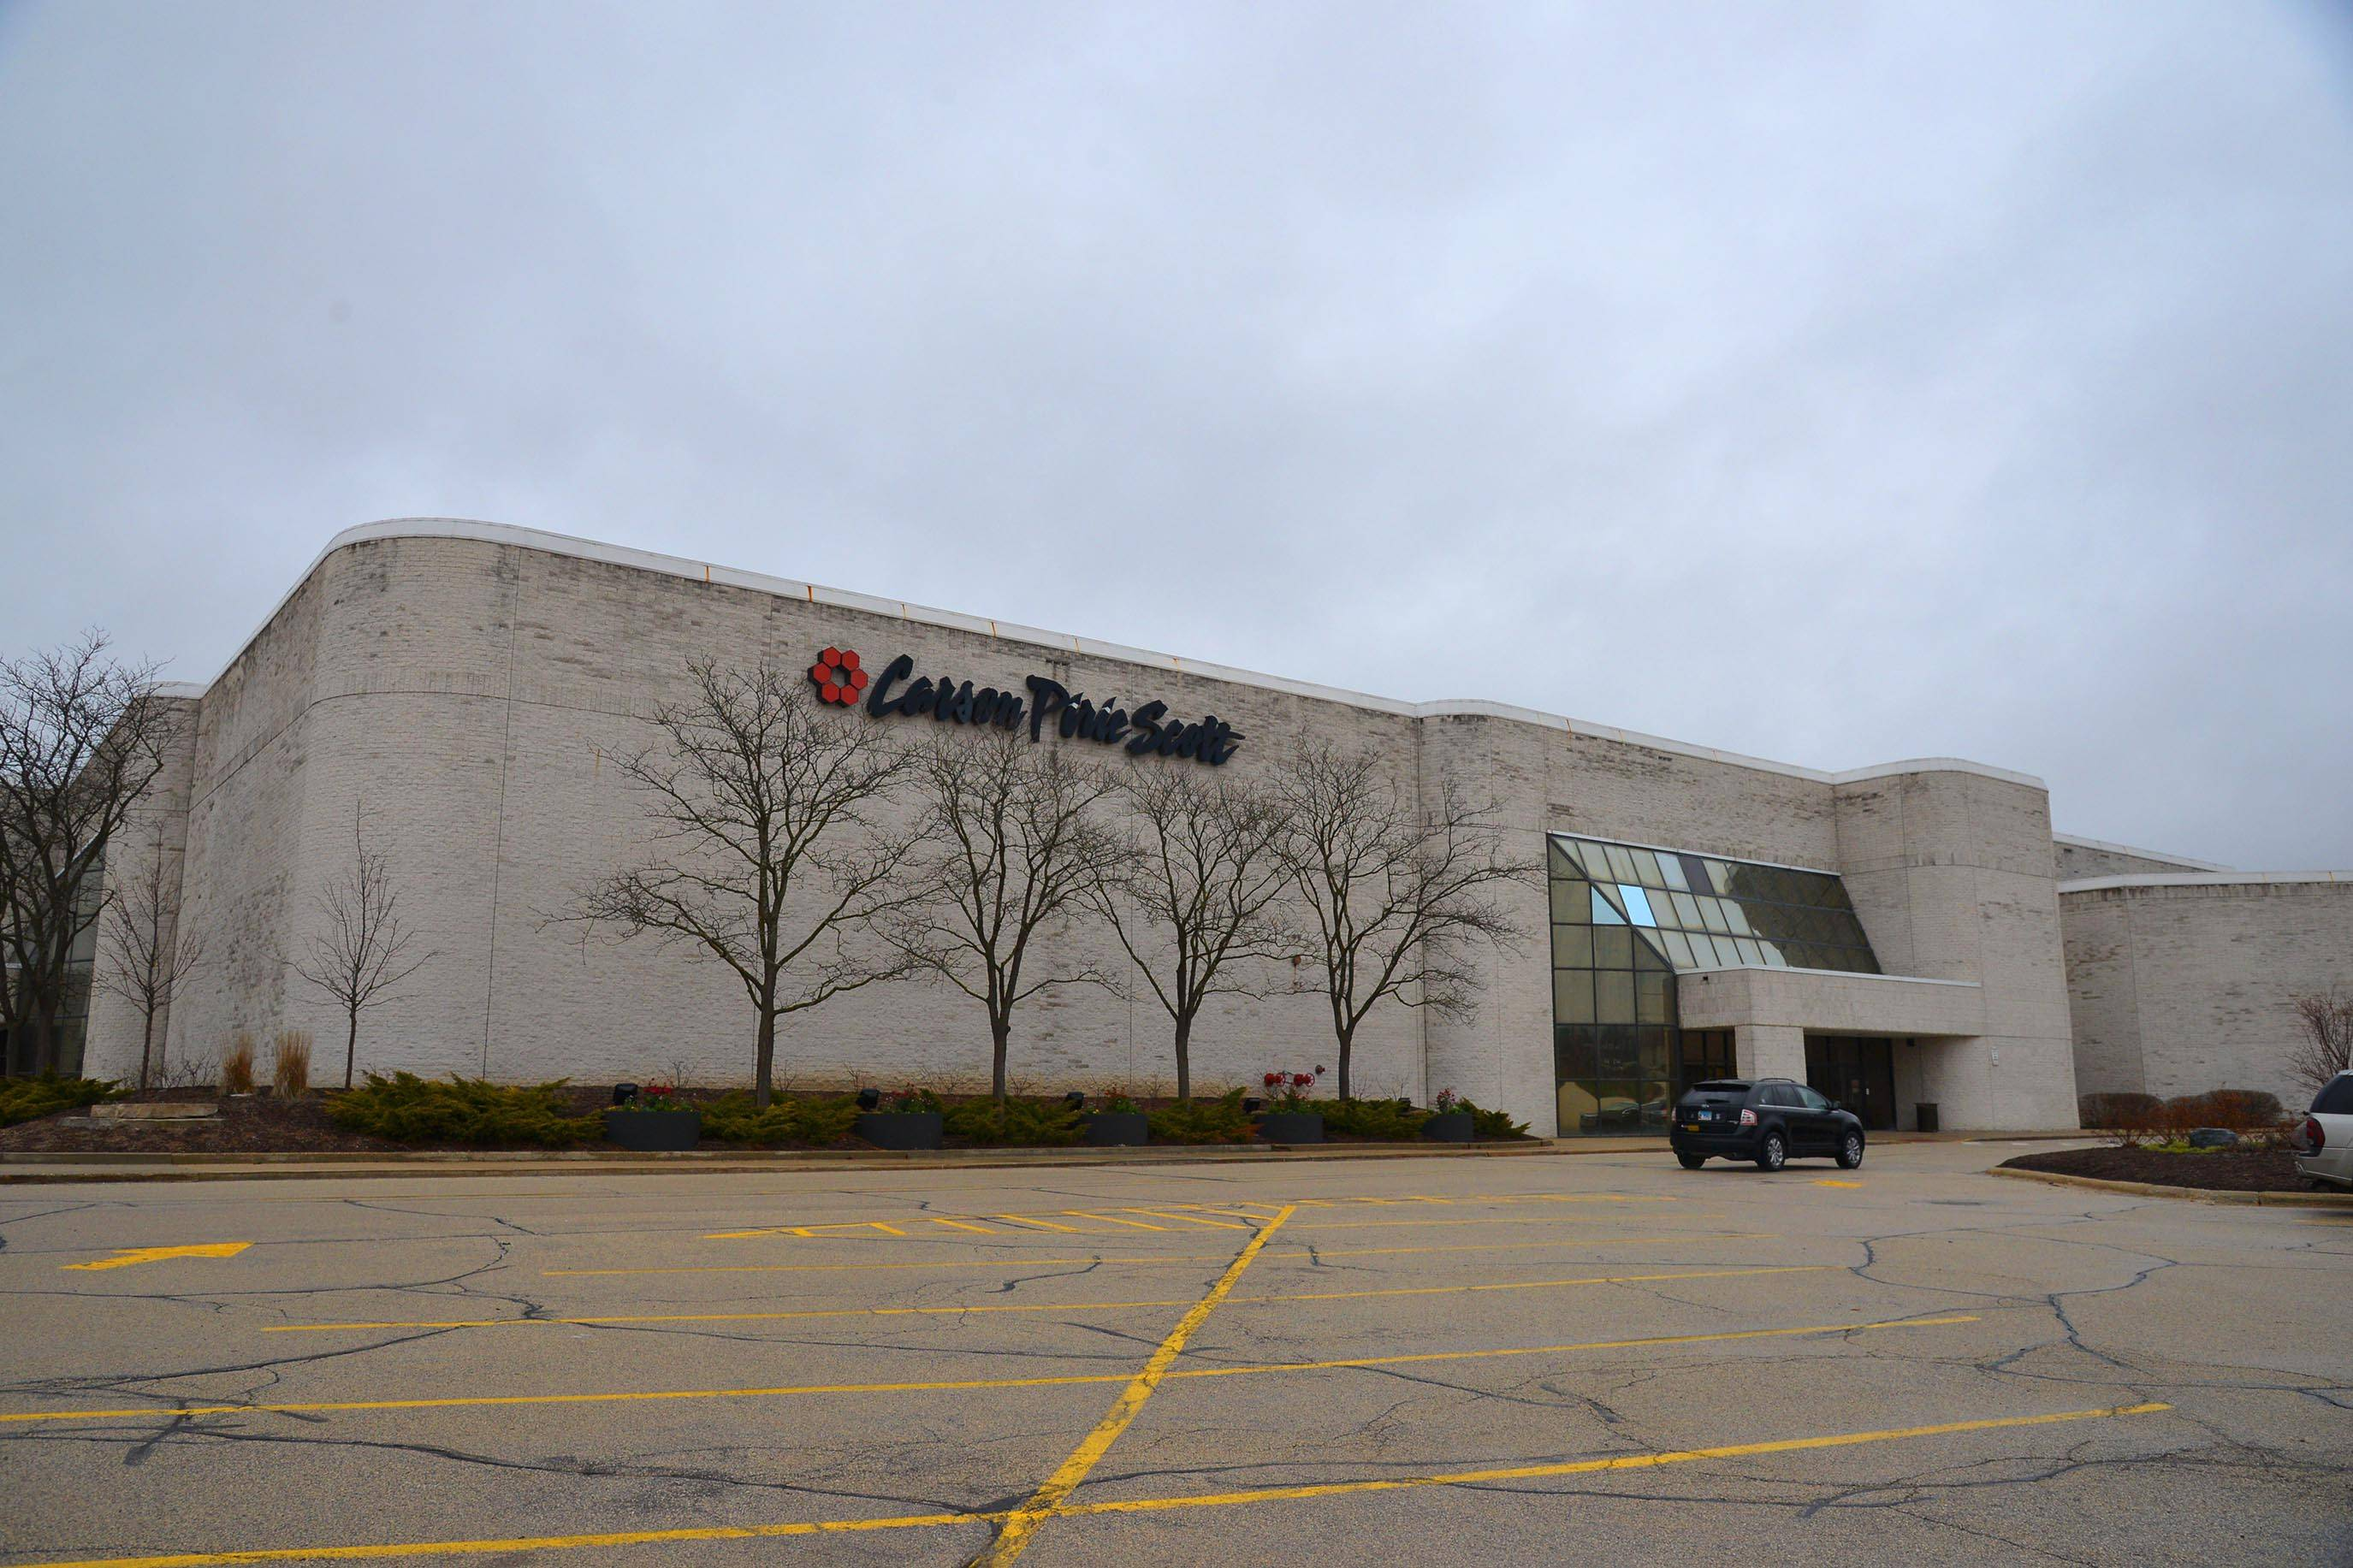 Carson's will be closing its remaining stores, including this one at Spring Hill Mall in Carpentersville.